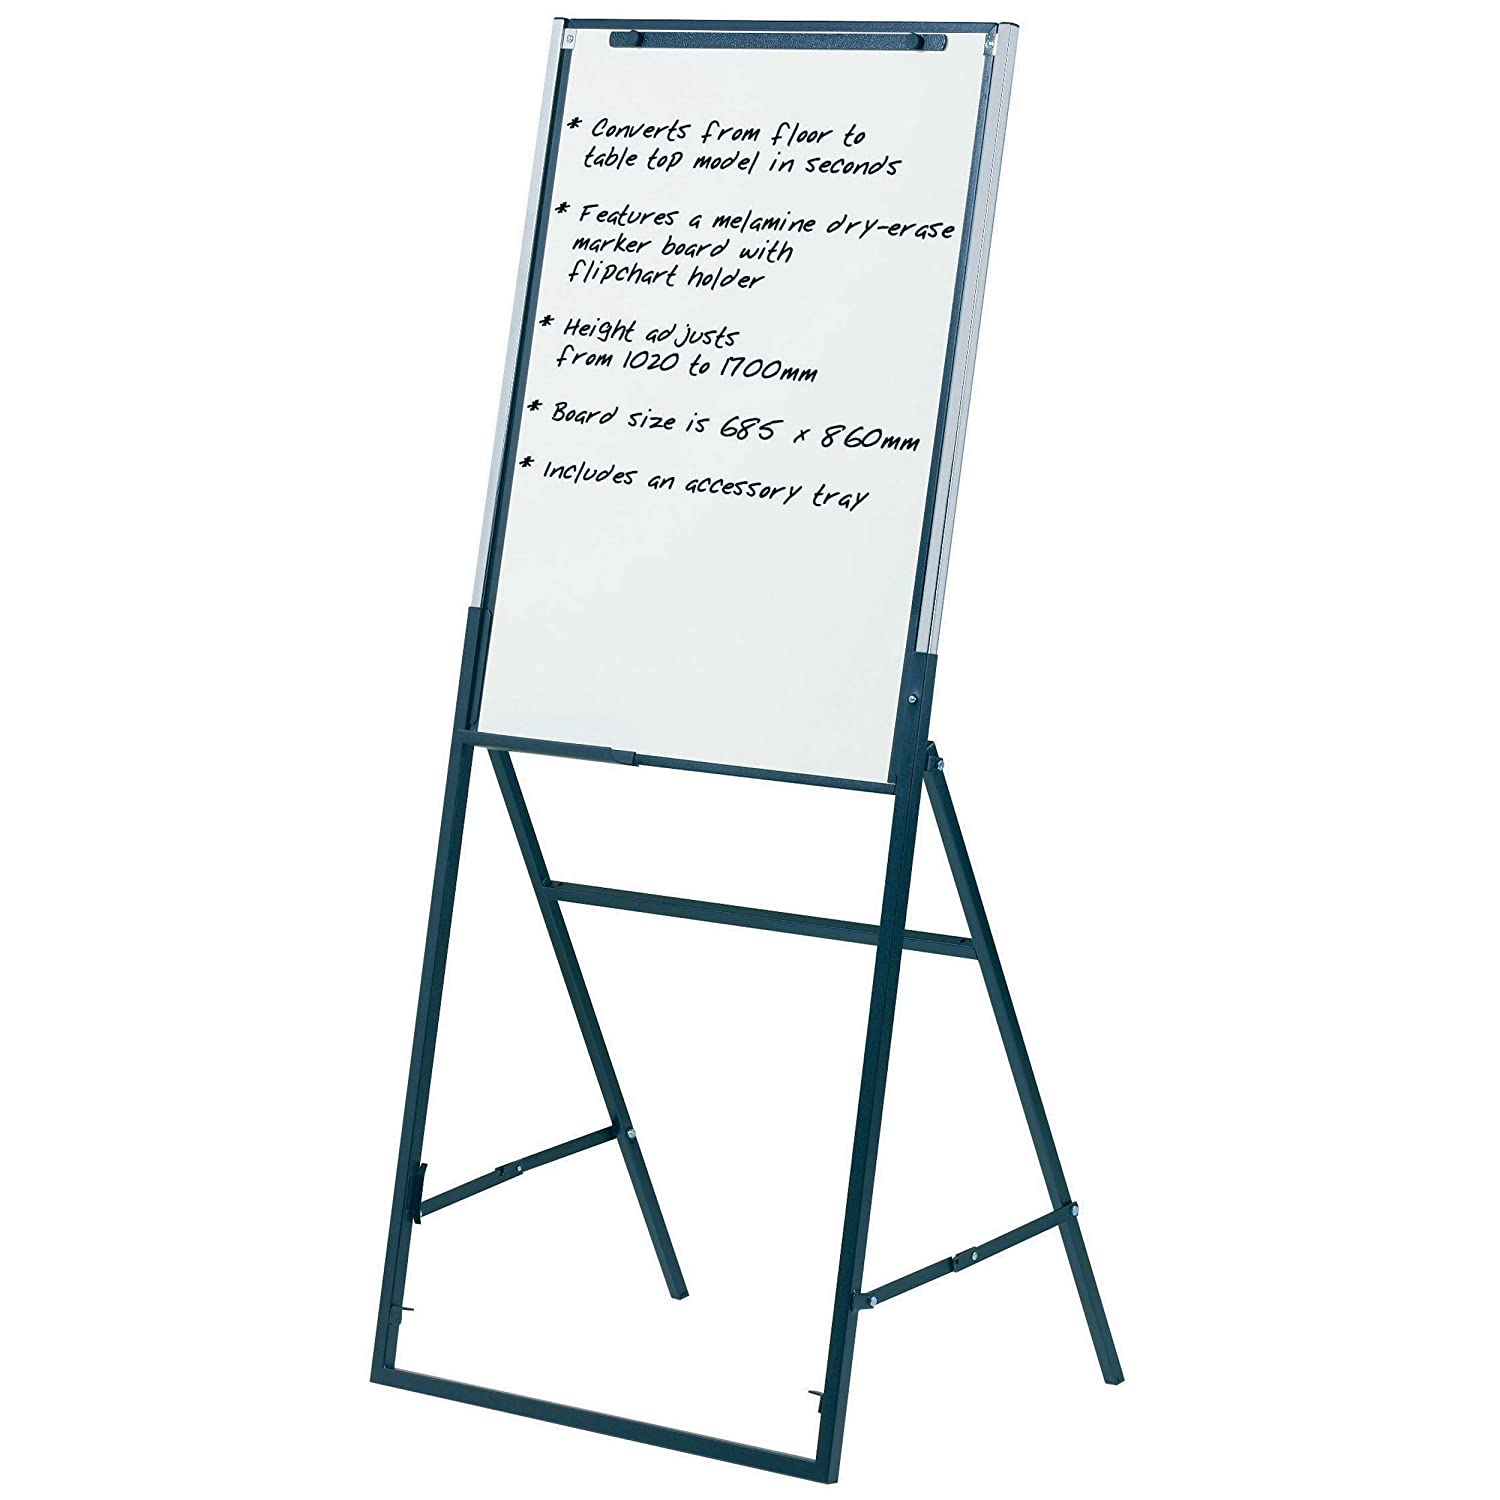 Quartet Futura Easel, Whiteboard/Flipchart, 24 x 36 Inches, Black Frame (351900) ACCO Brands